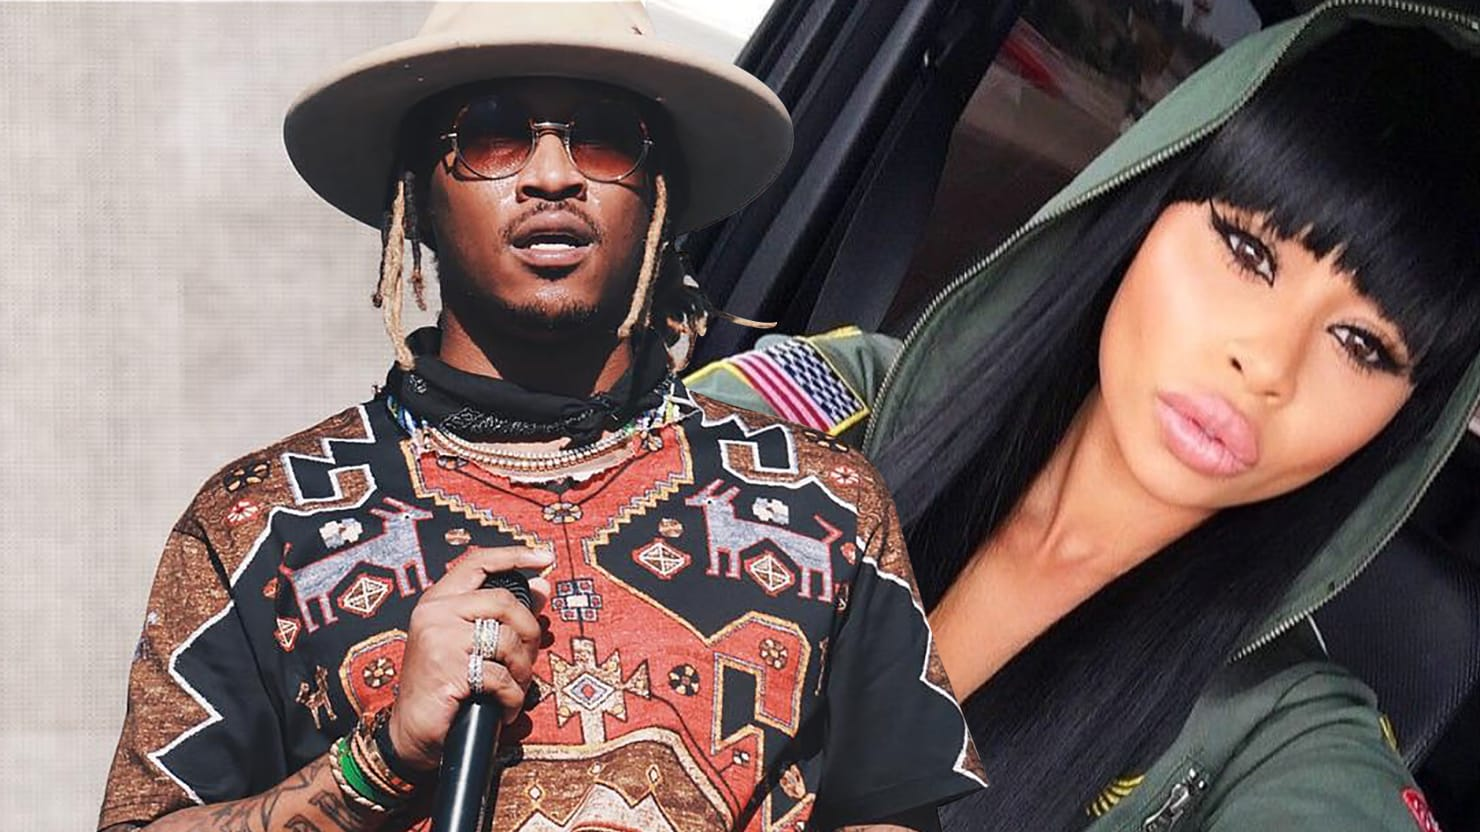 The Strange Case Of Blac Chyna, Who Got Her Alleged Dream Man Future's Name  Tattooed